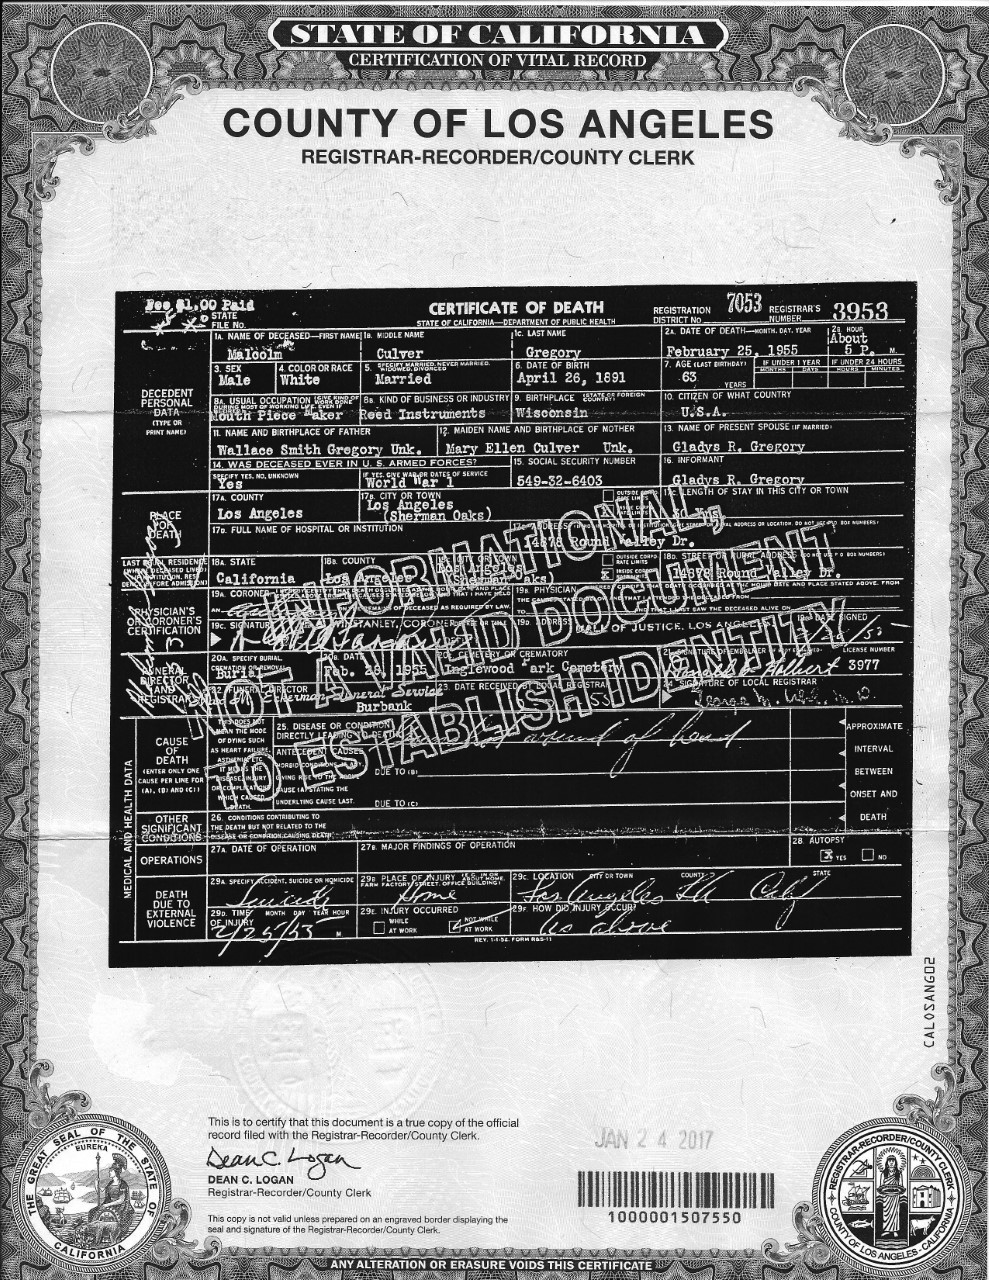 Stuff sax the gregory mouthpiece saga part viii epilogue we obtained malcolm gregorys death certificate from the los angeles county clerks office xflitez Image collections